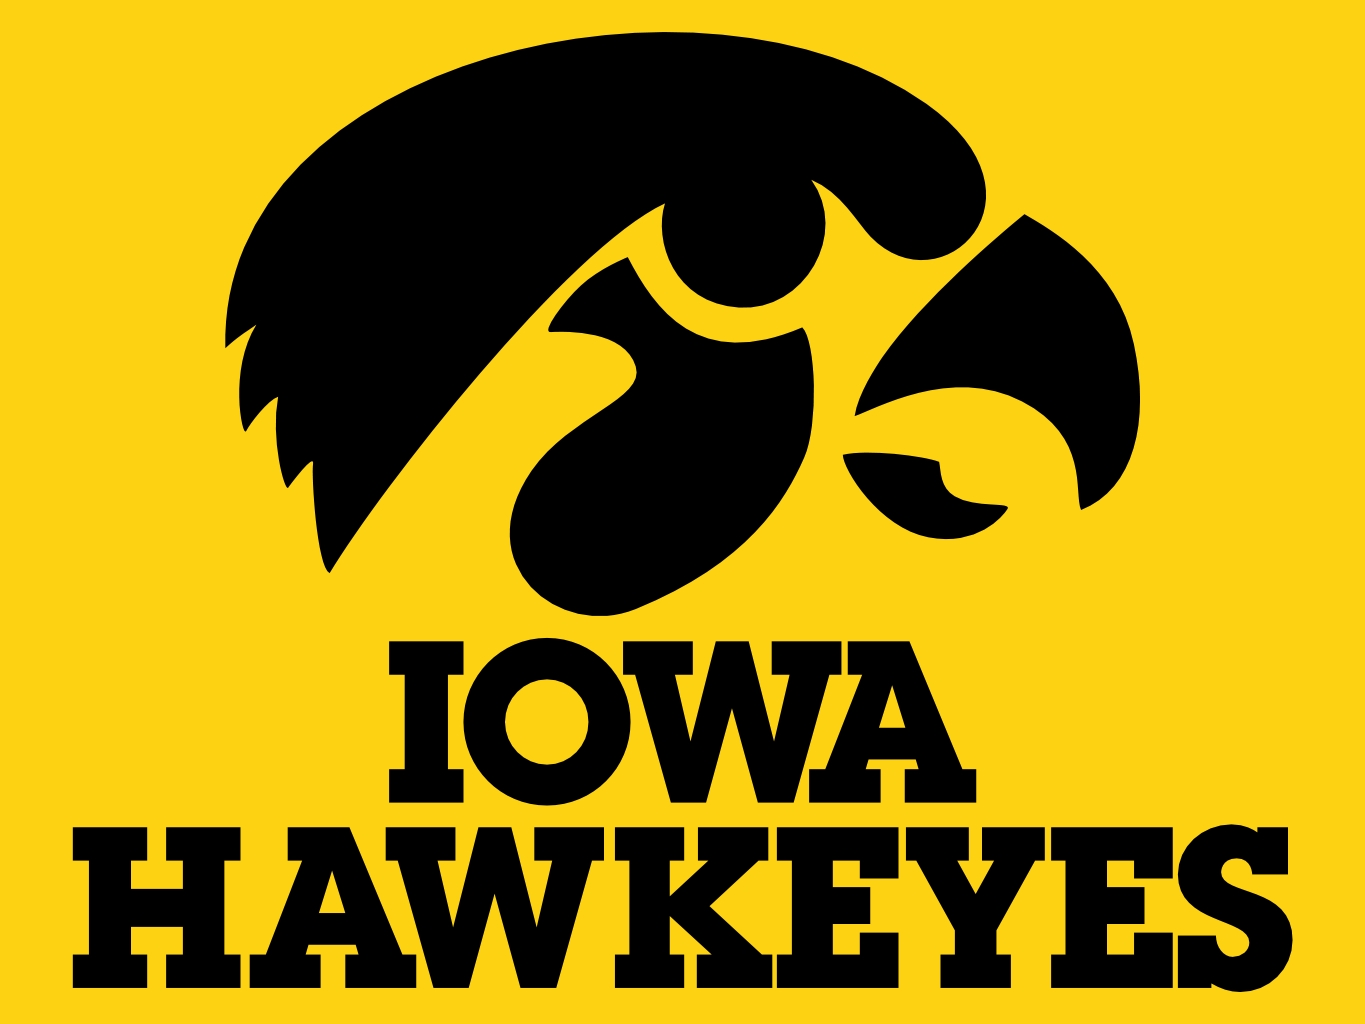 iowa-hawkeyes2.jpg